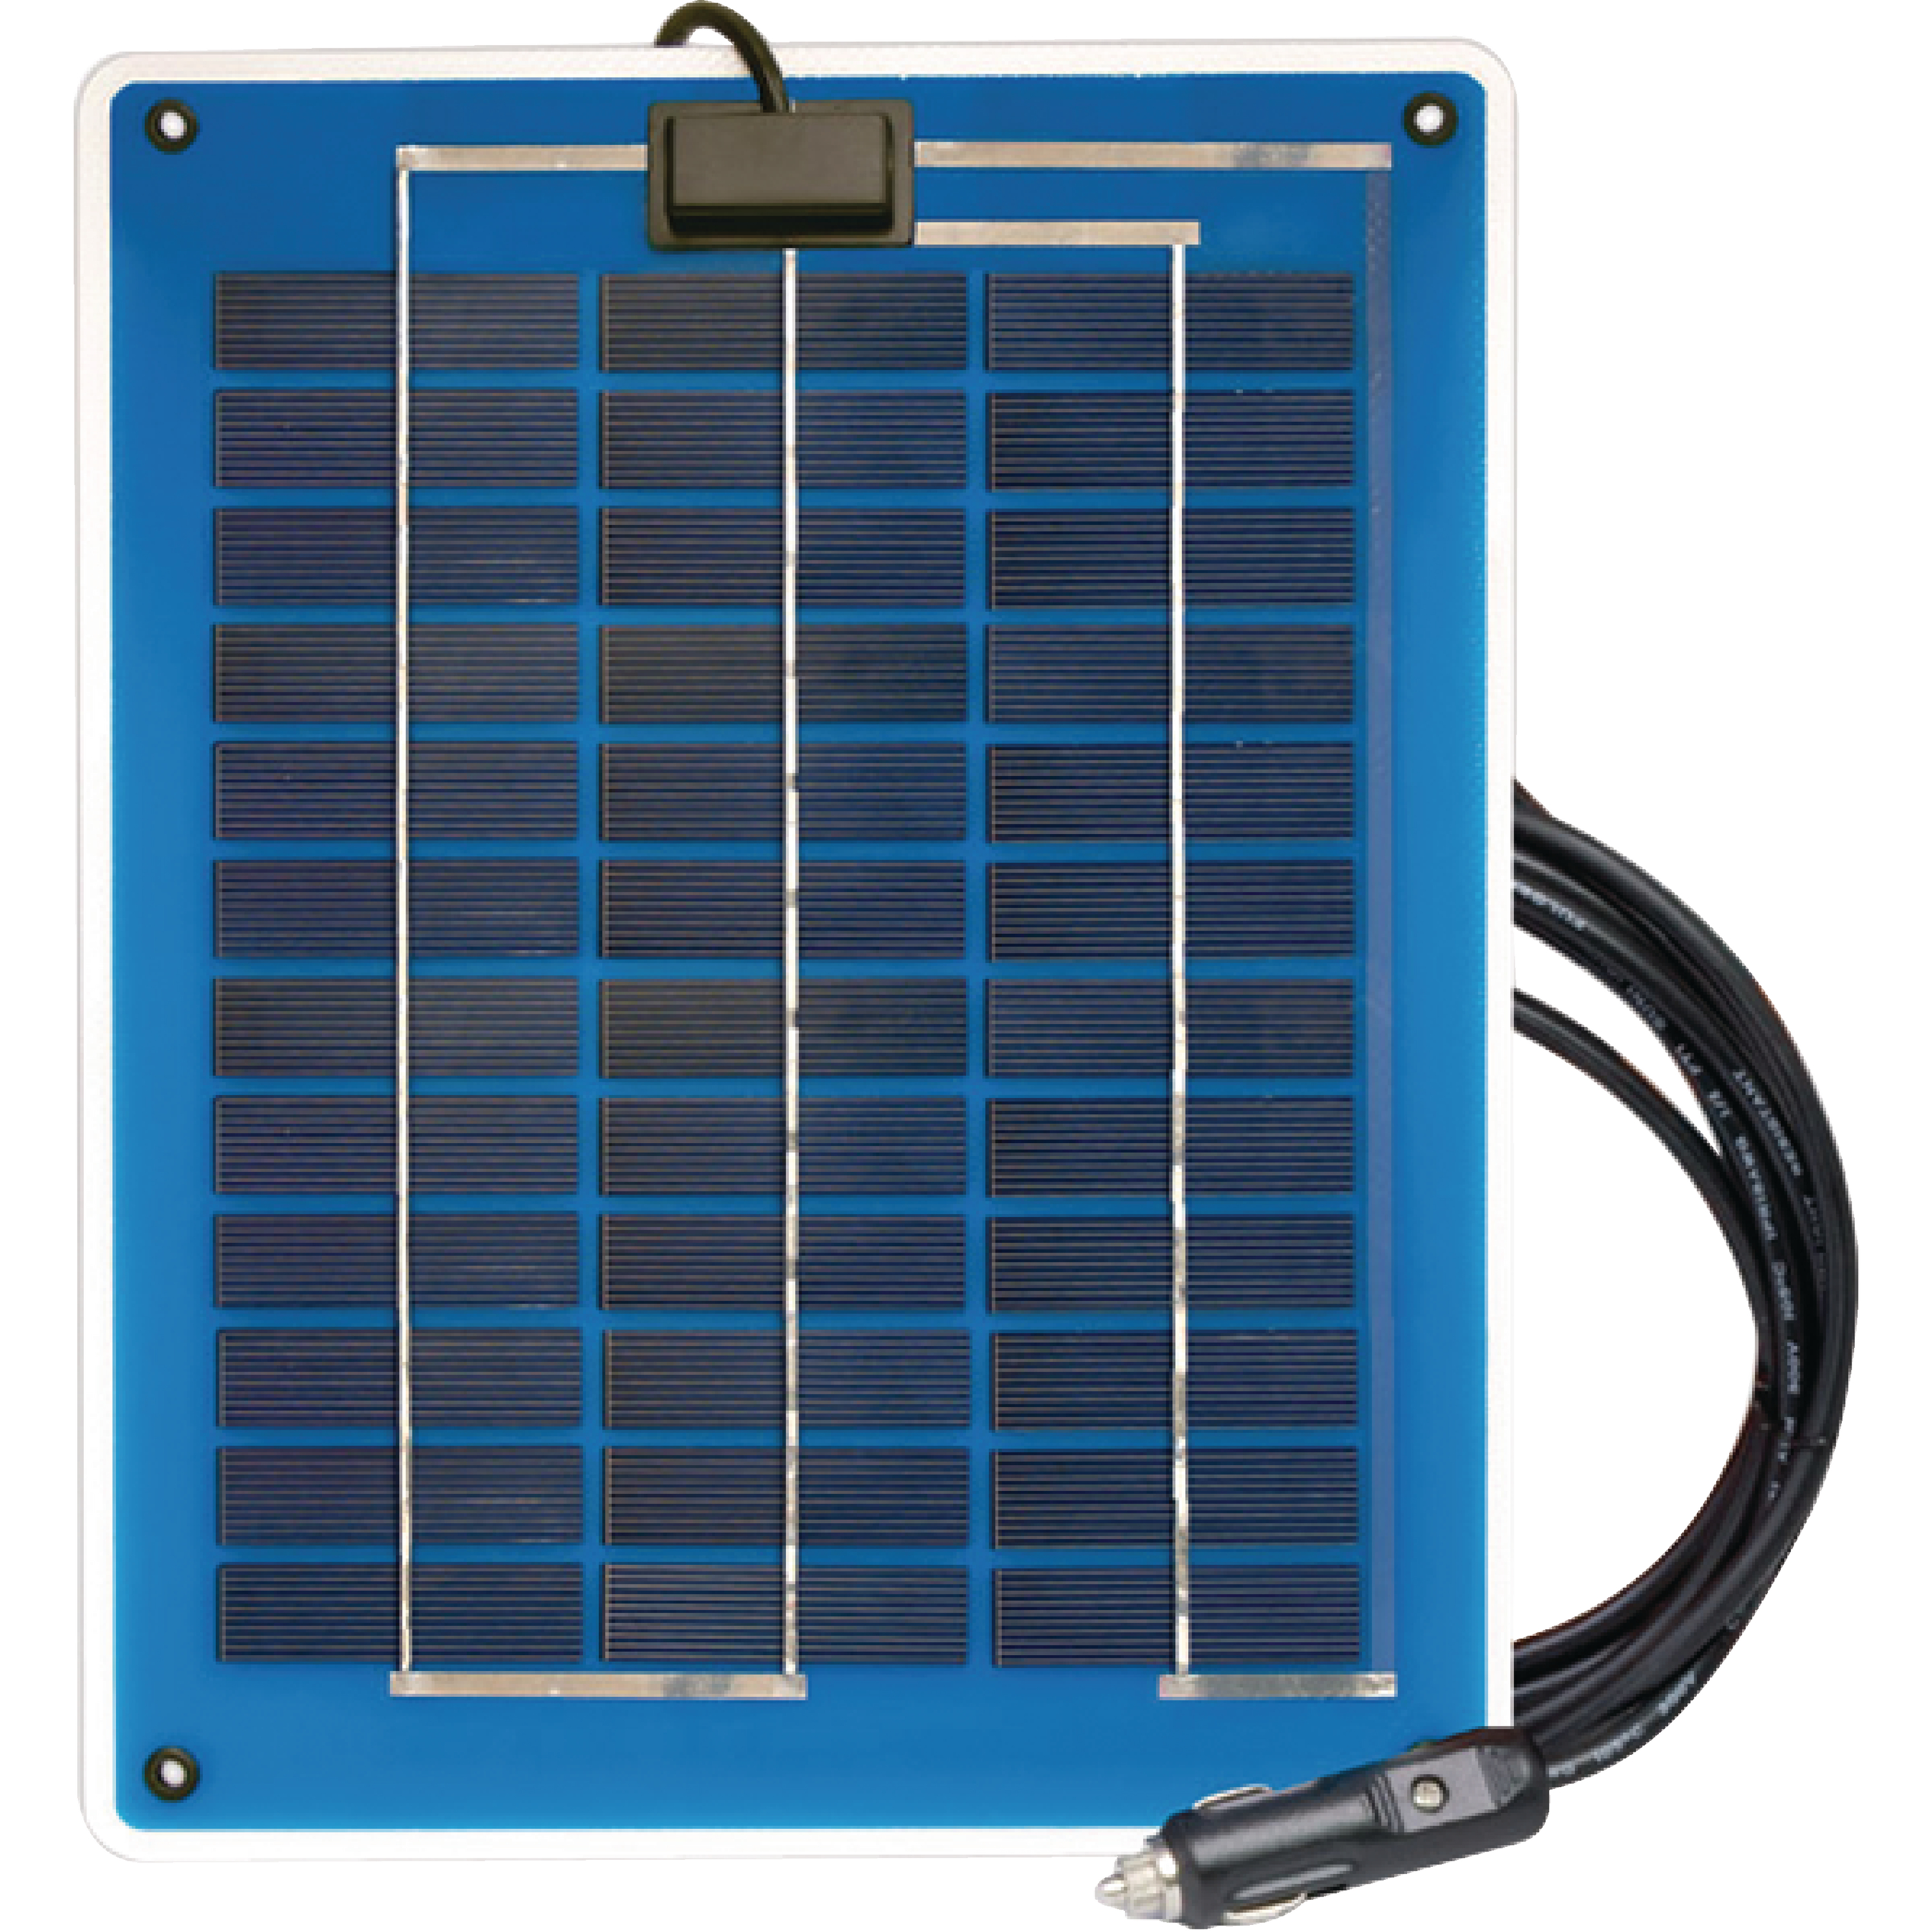 SamlexSolar SC-10 10W Battery Maintainer